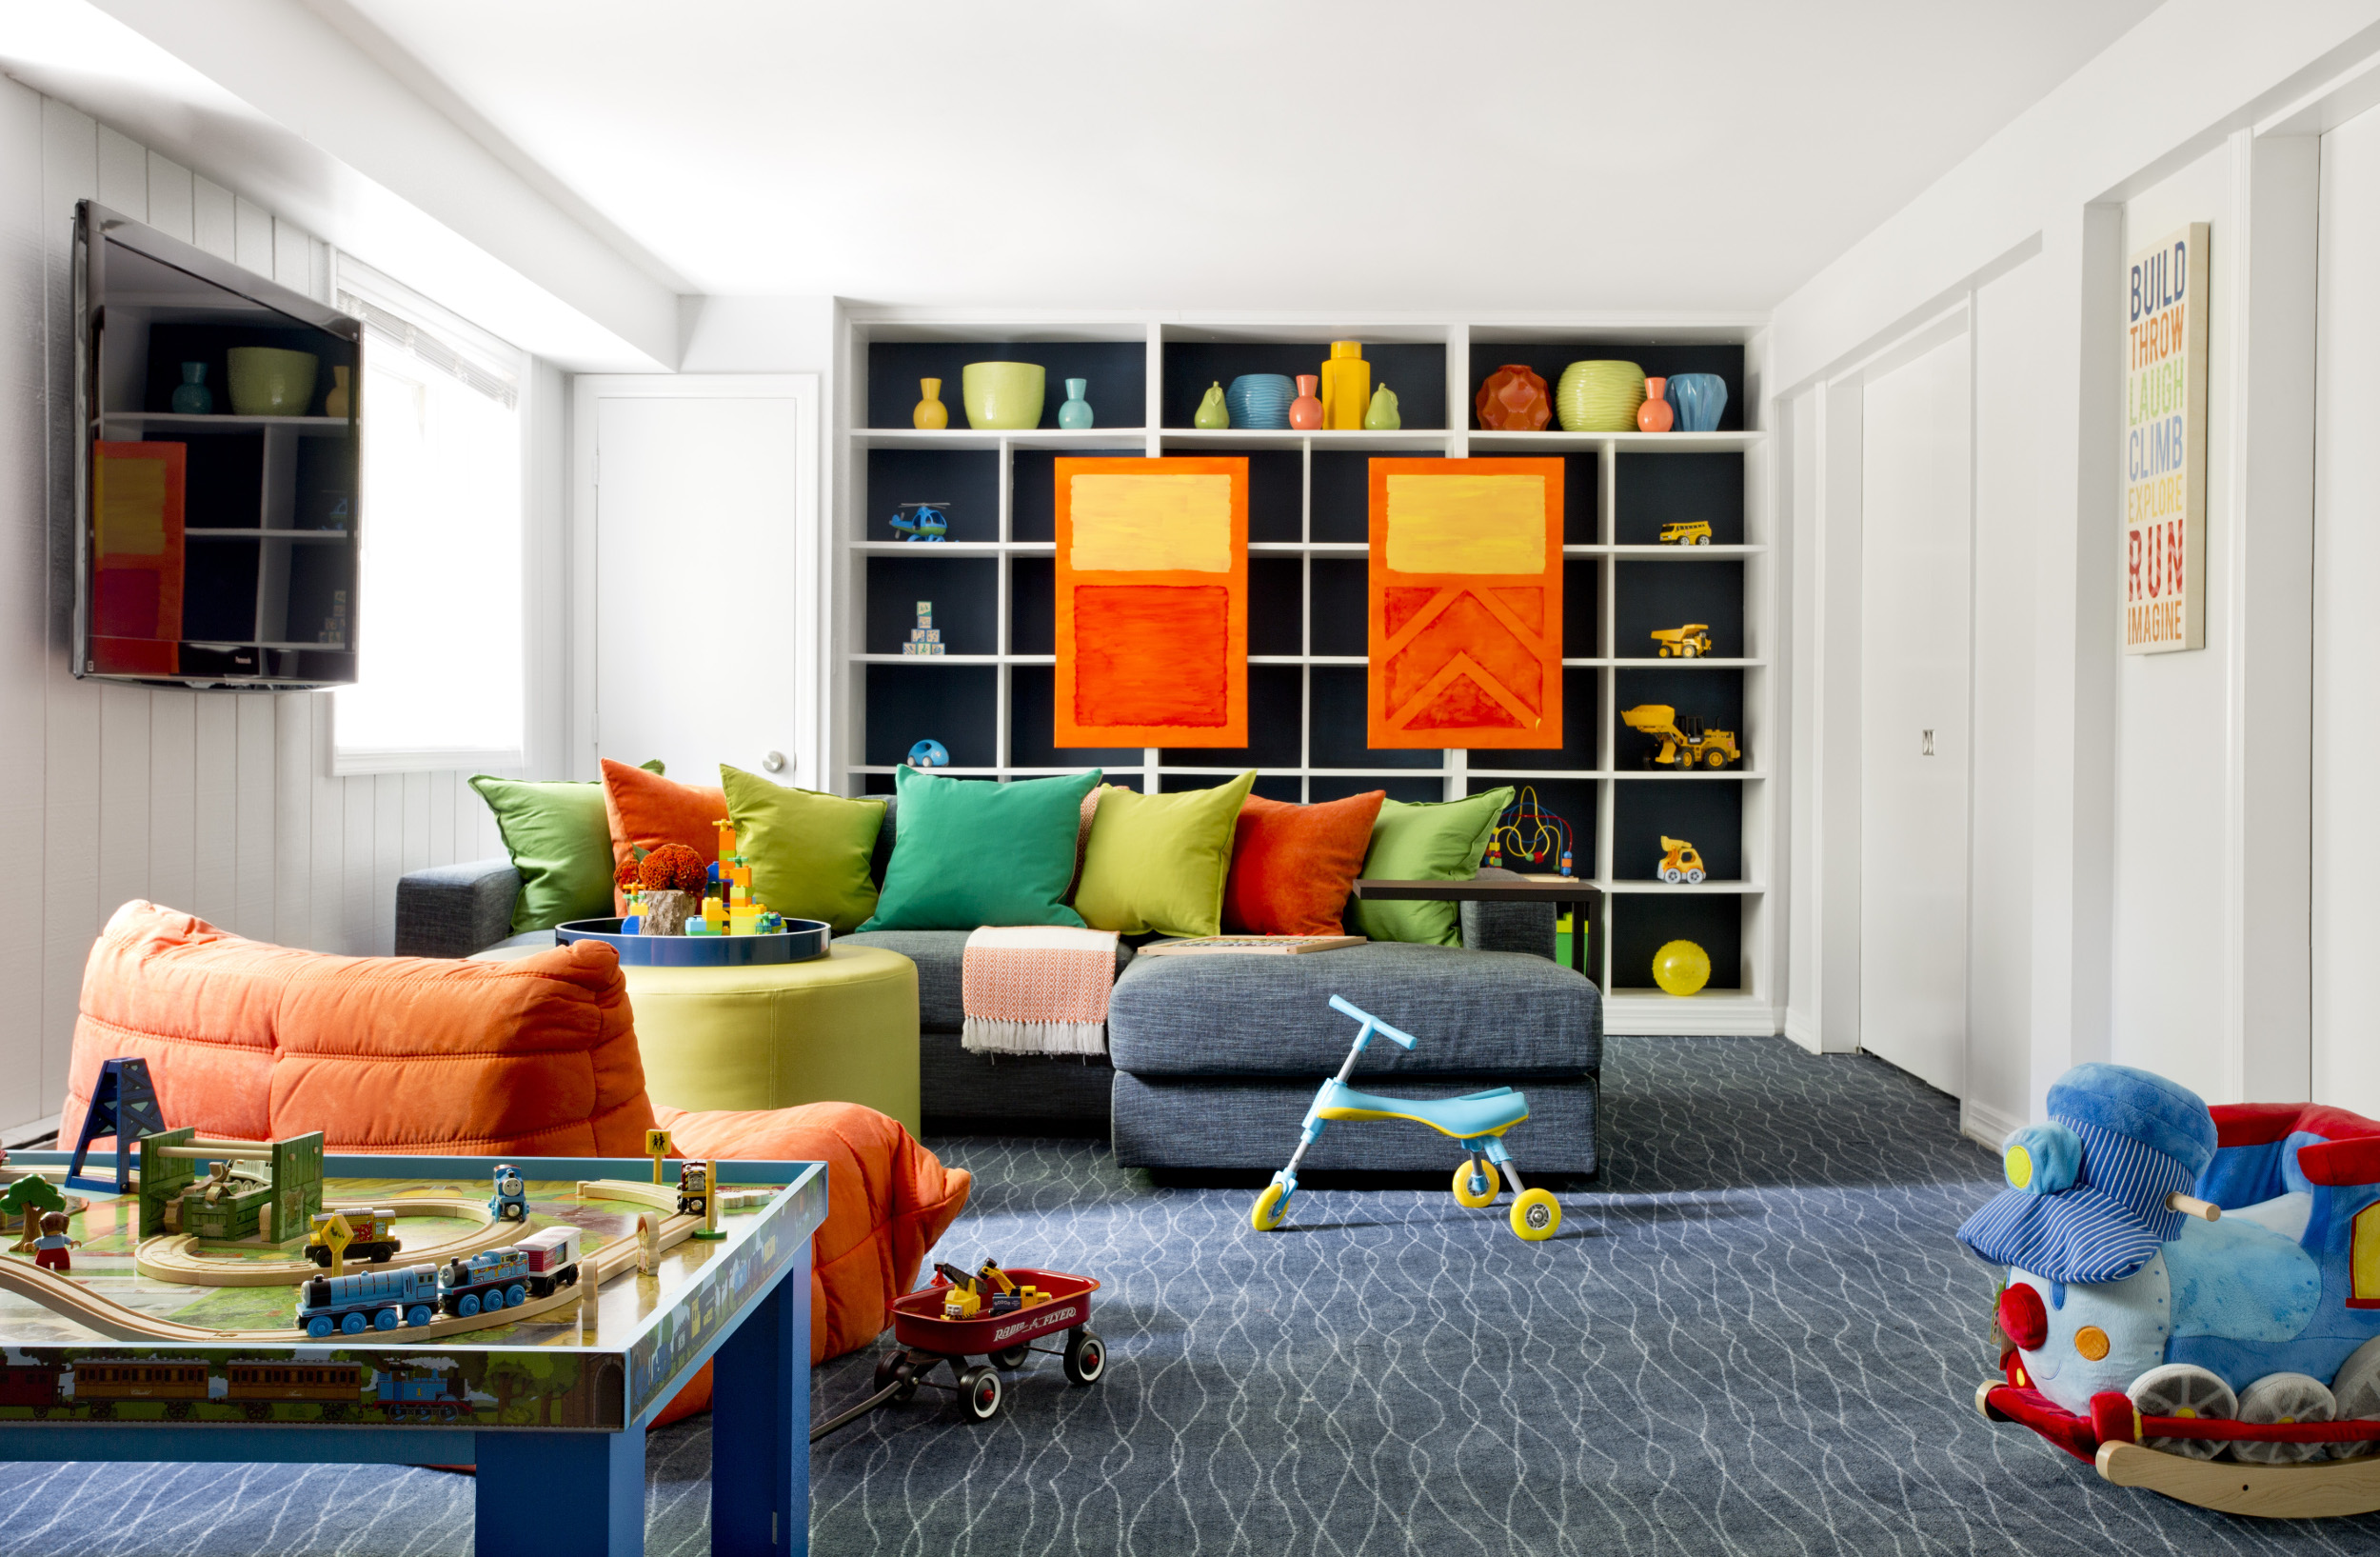 Kids Room Design Ideas Caroline Kopp.jpg